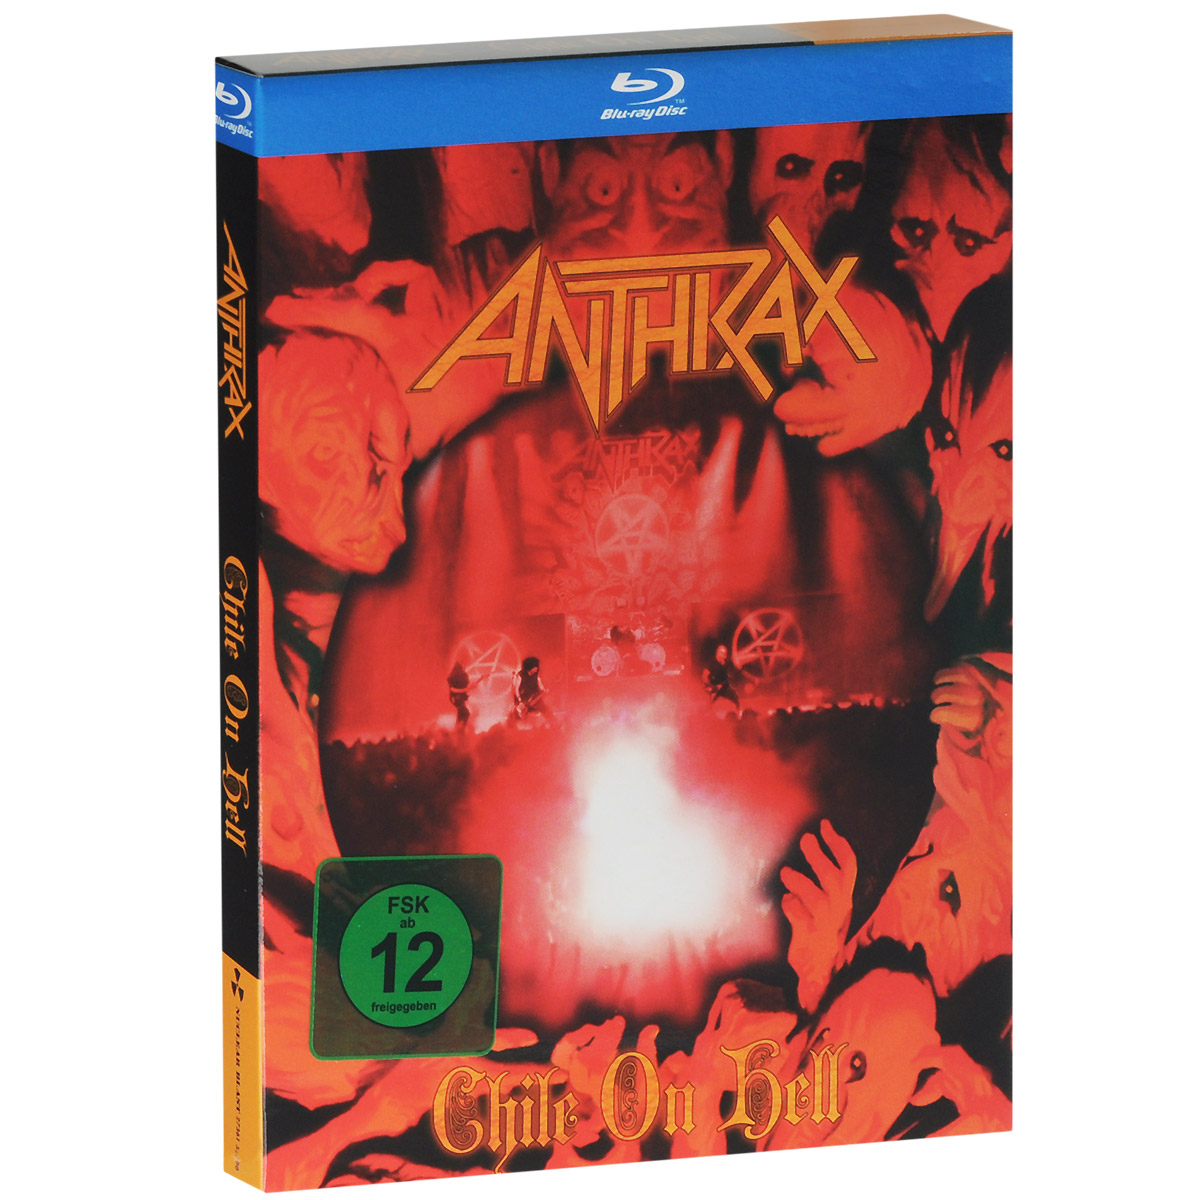 Anthrax. Chile on hell (Blu-ray + 2 CD) the berlin concert domingo netrebko villazon blu ray